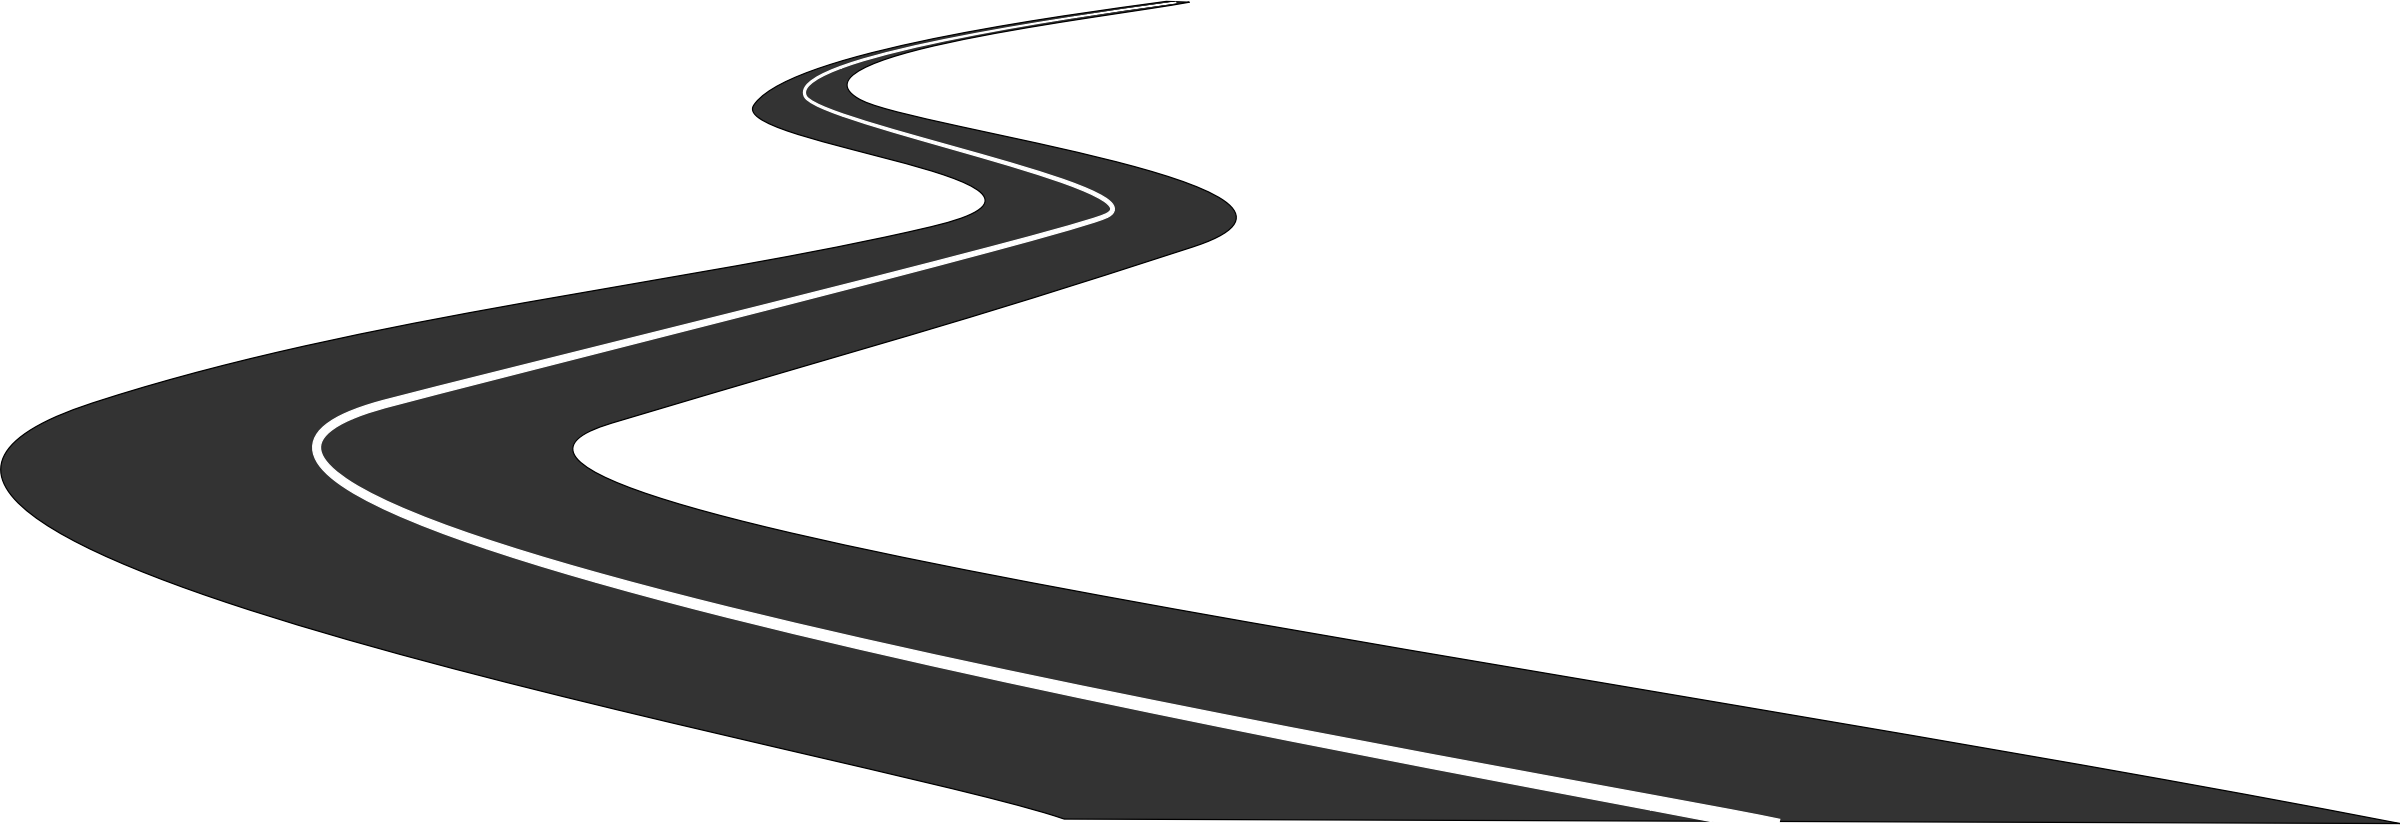 Drawn roadway vector Straight Free Straight Download